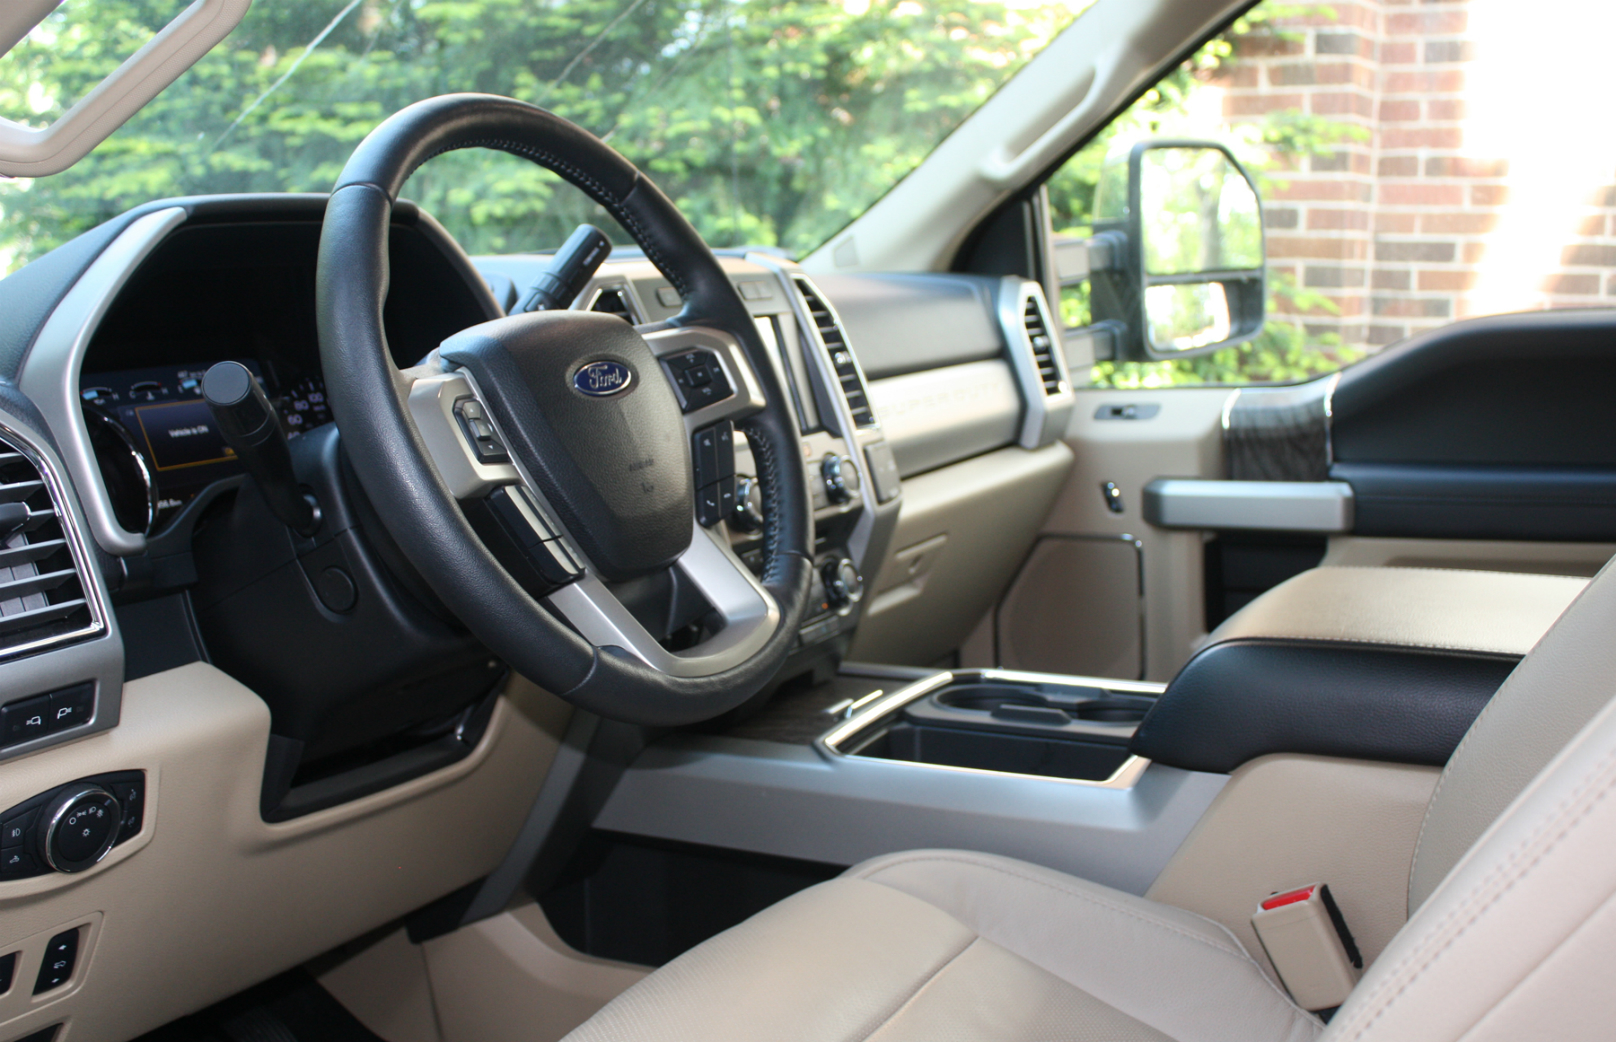 Ford F-350 Super Duty Lariat Review